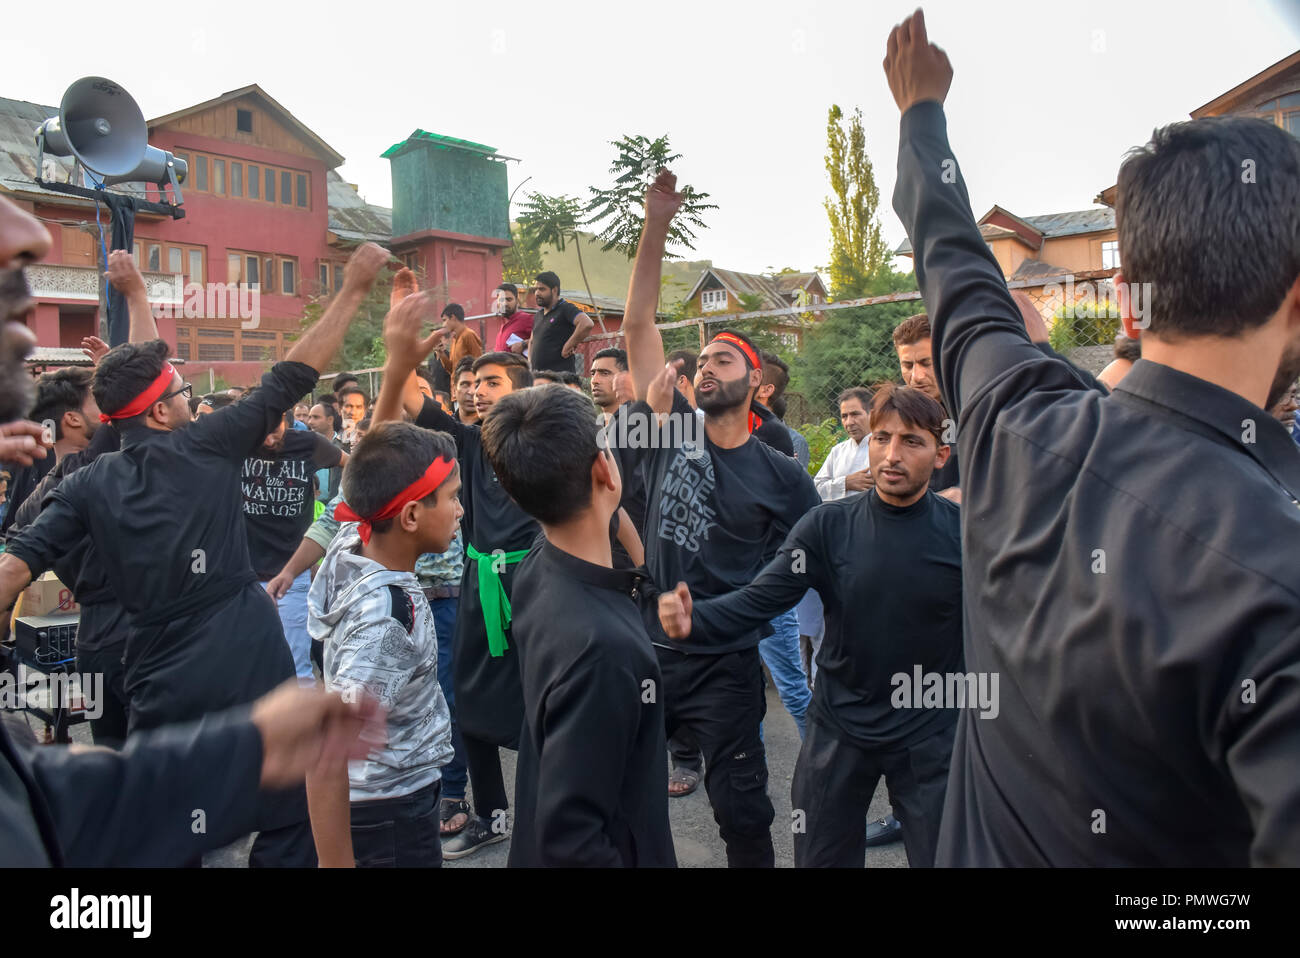 Kashmiri Shia Muslims seen raising their hands during the procession. 7th day of Ashura procession which marks the martyrdom anniversary of the Prophet Muhammed's grandson the revered Imam Hussein who was killed in Karbala, Iraq in 680 AD in southern Iraq in the seventh century. - Stock Image